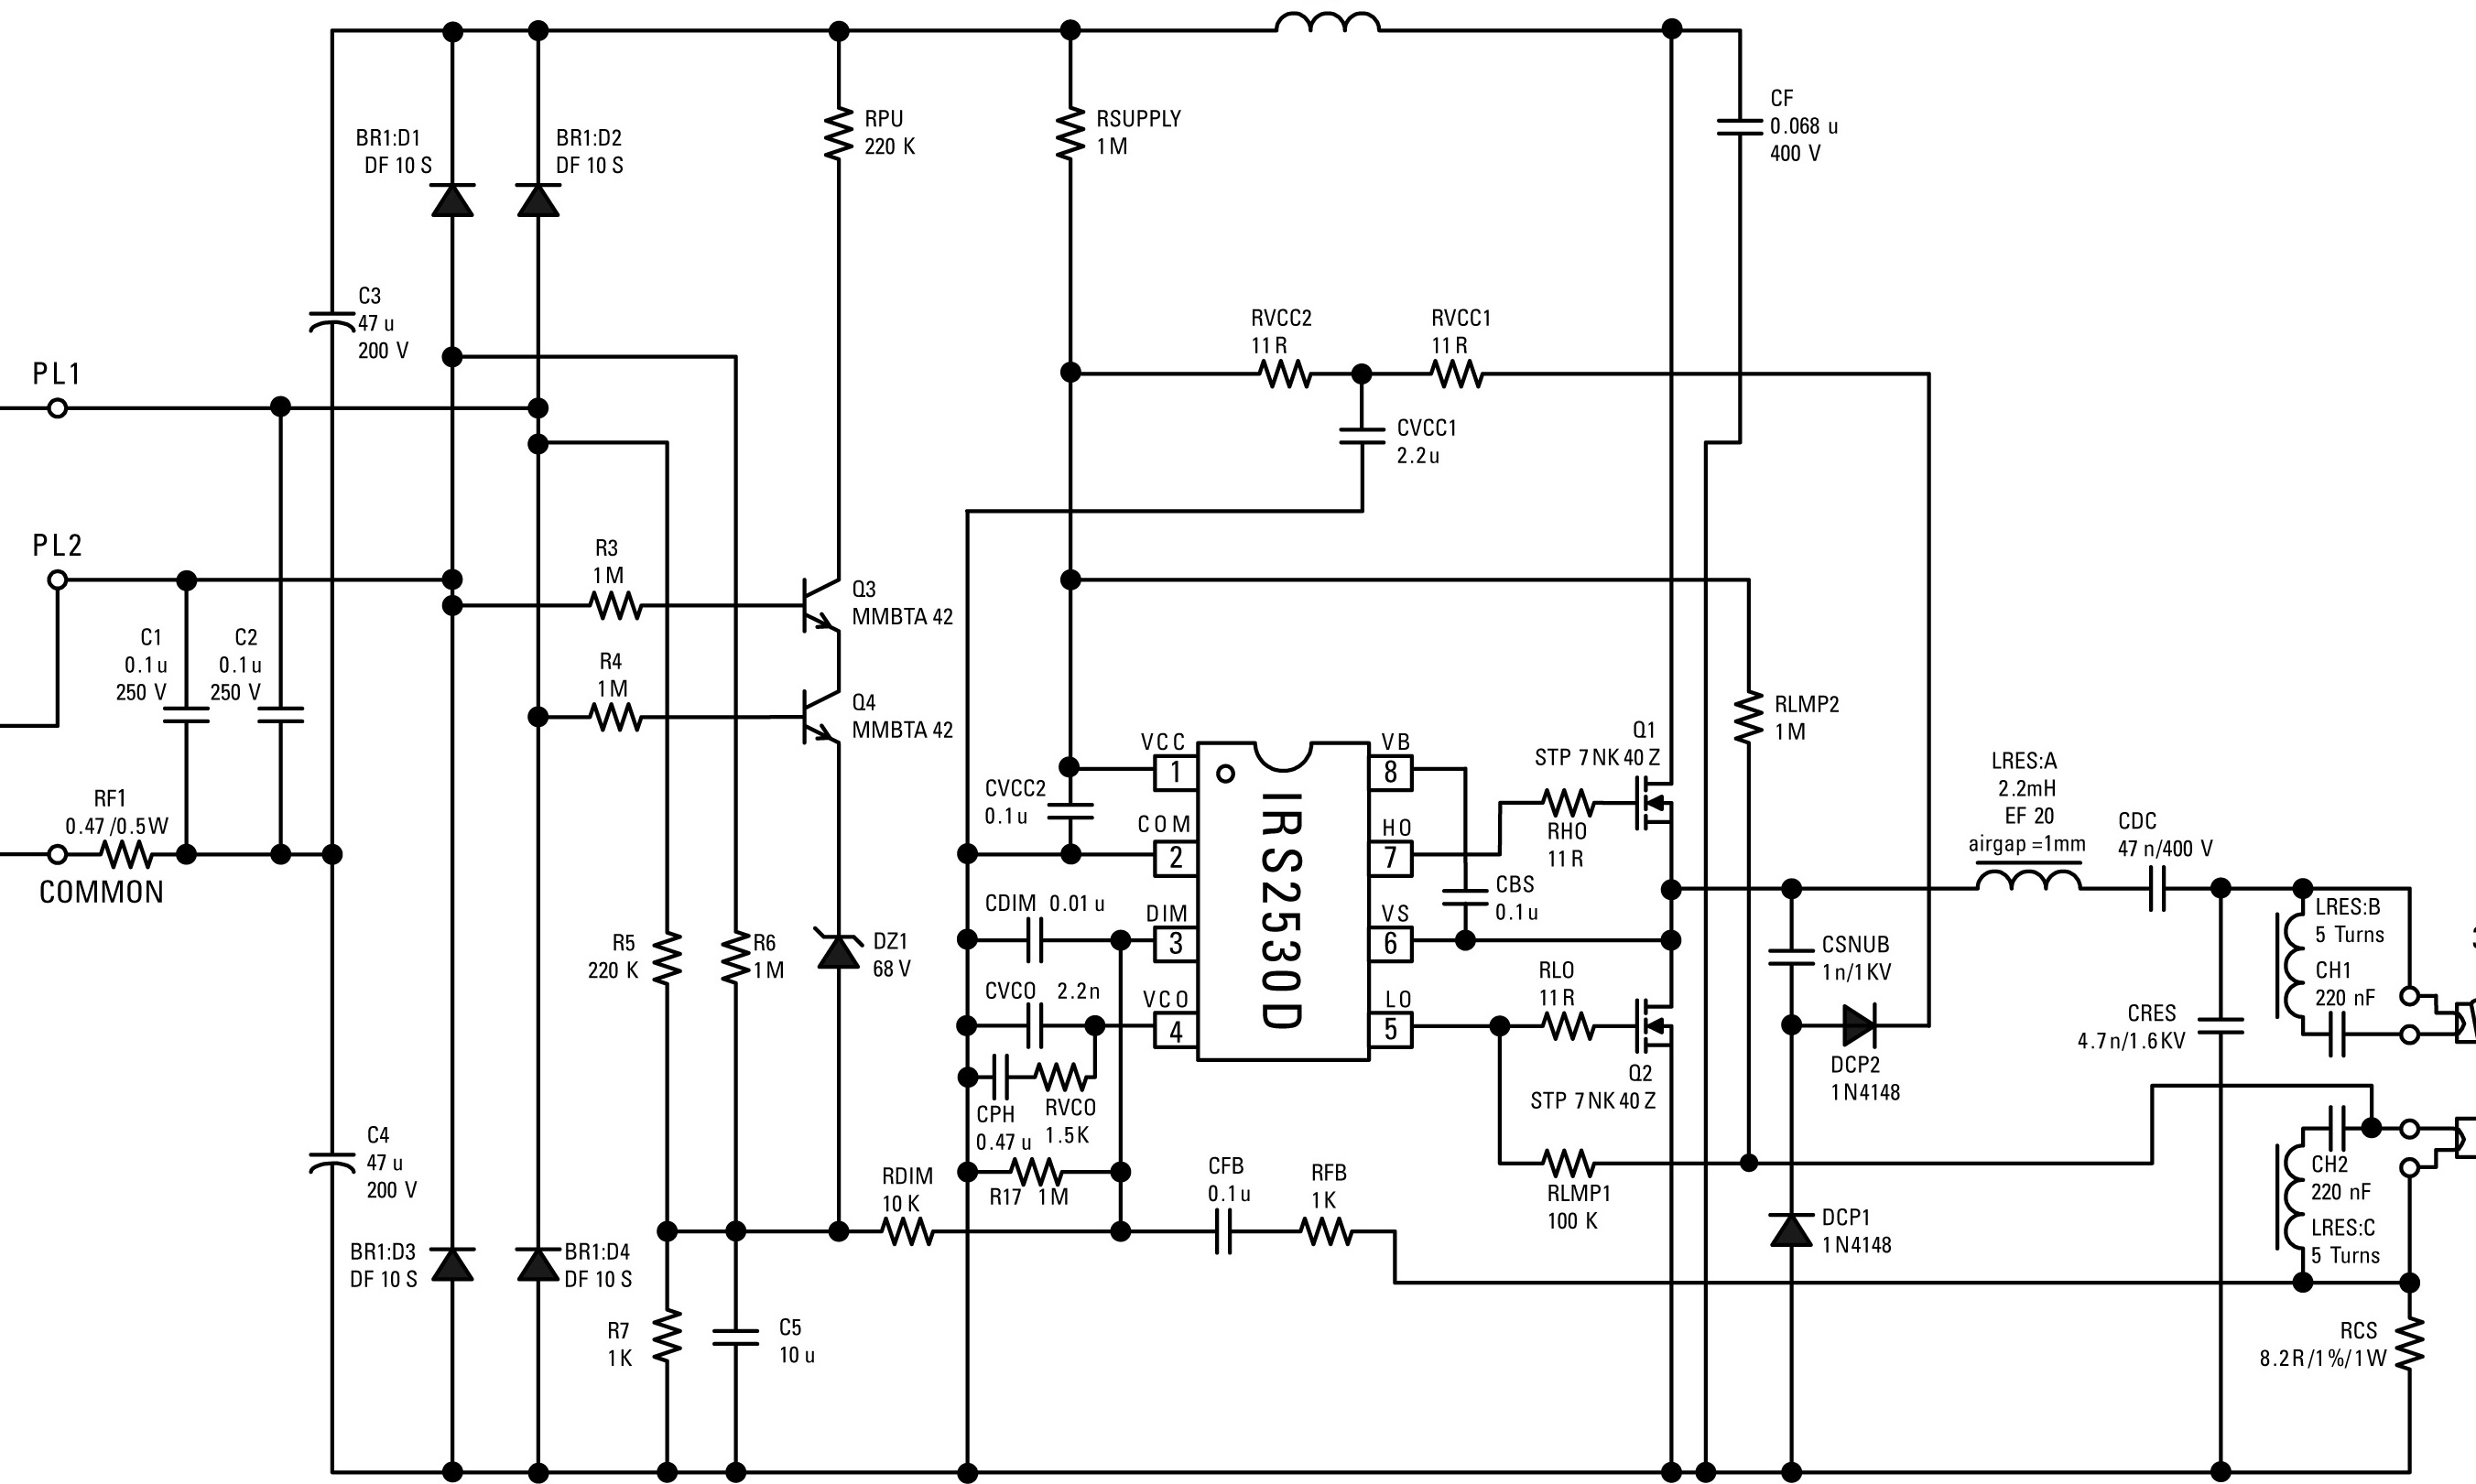 230v Ballast Wiring Diagram | Wiring Diagram on t12 to t8 wiring, 4 lamp ballast wiring diagram, 4 lamp t8 high bay fluorescent lighting fixtures, 4 tube ballast wiring, 2 lamp t8 ballast wiring, t8 instant start ballast wiring,